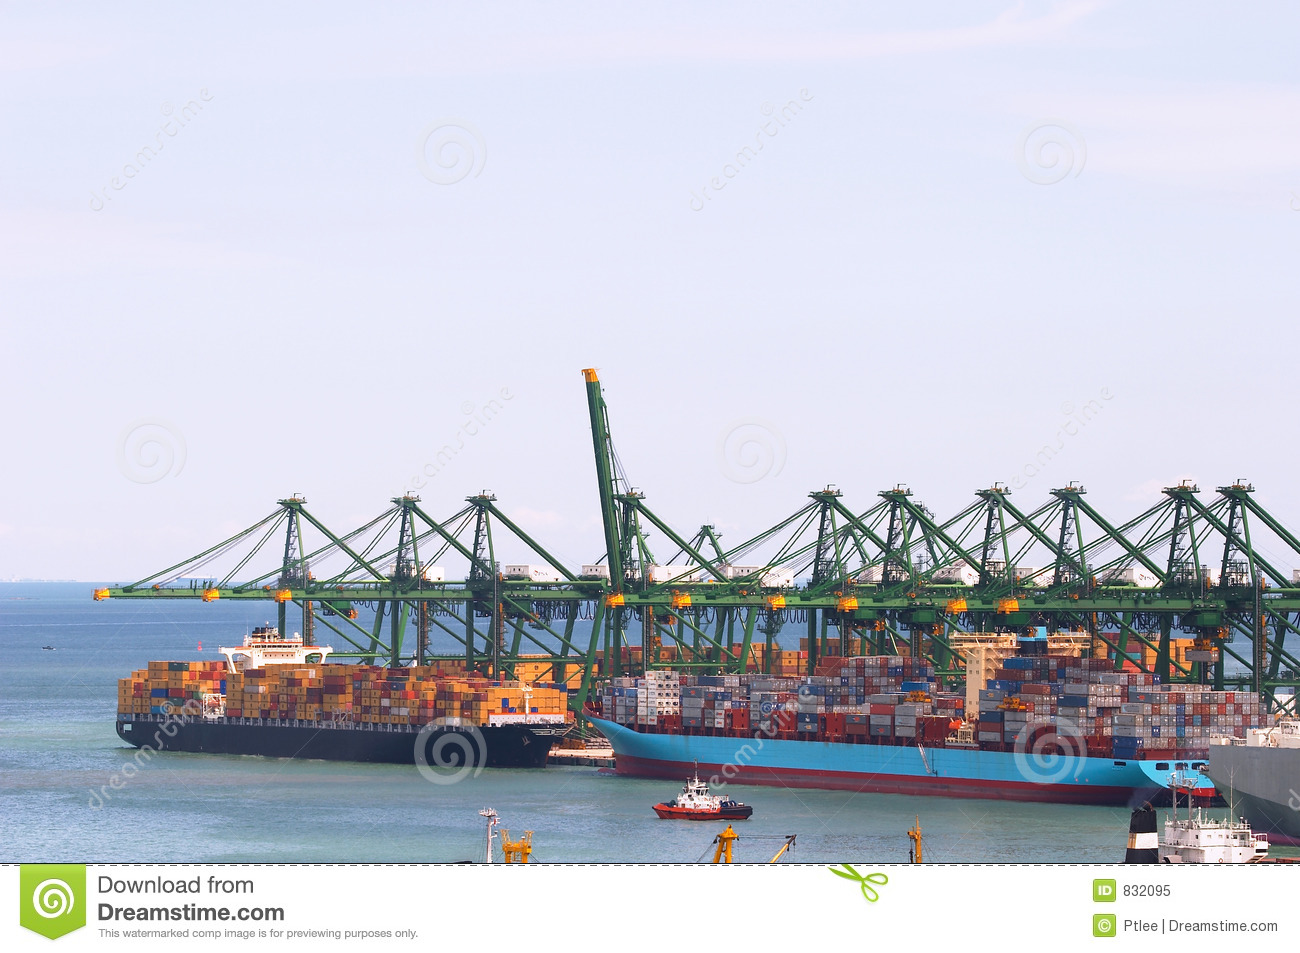 Huge gantry cranes and cargo container ships